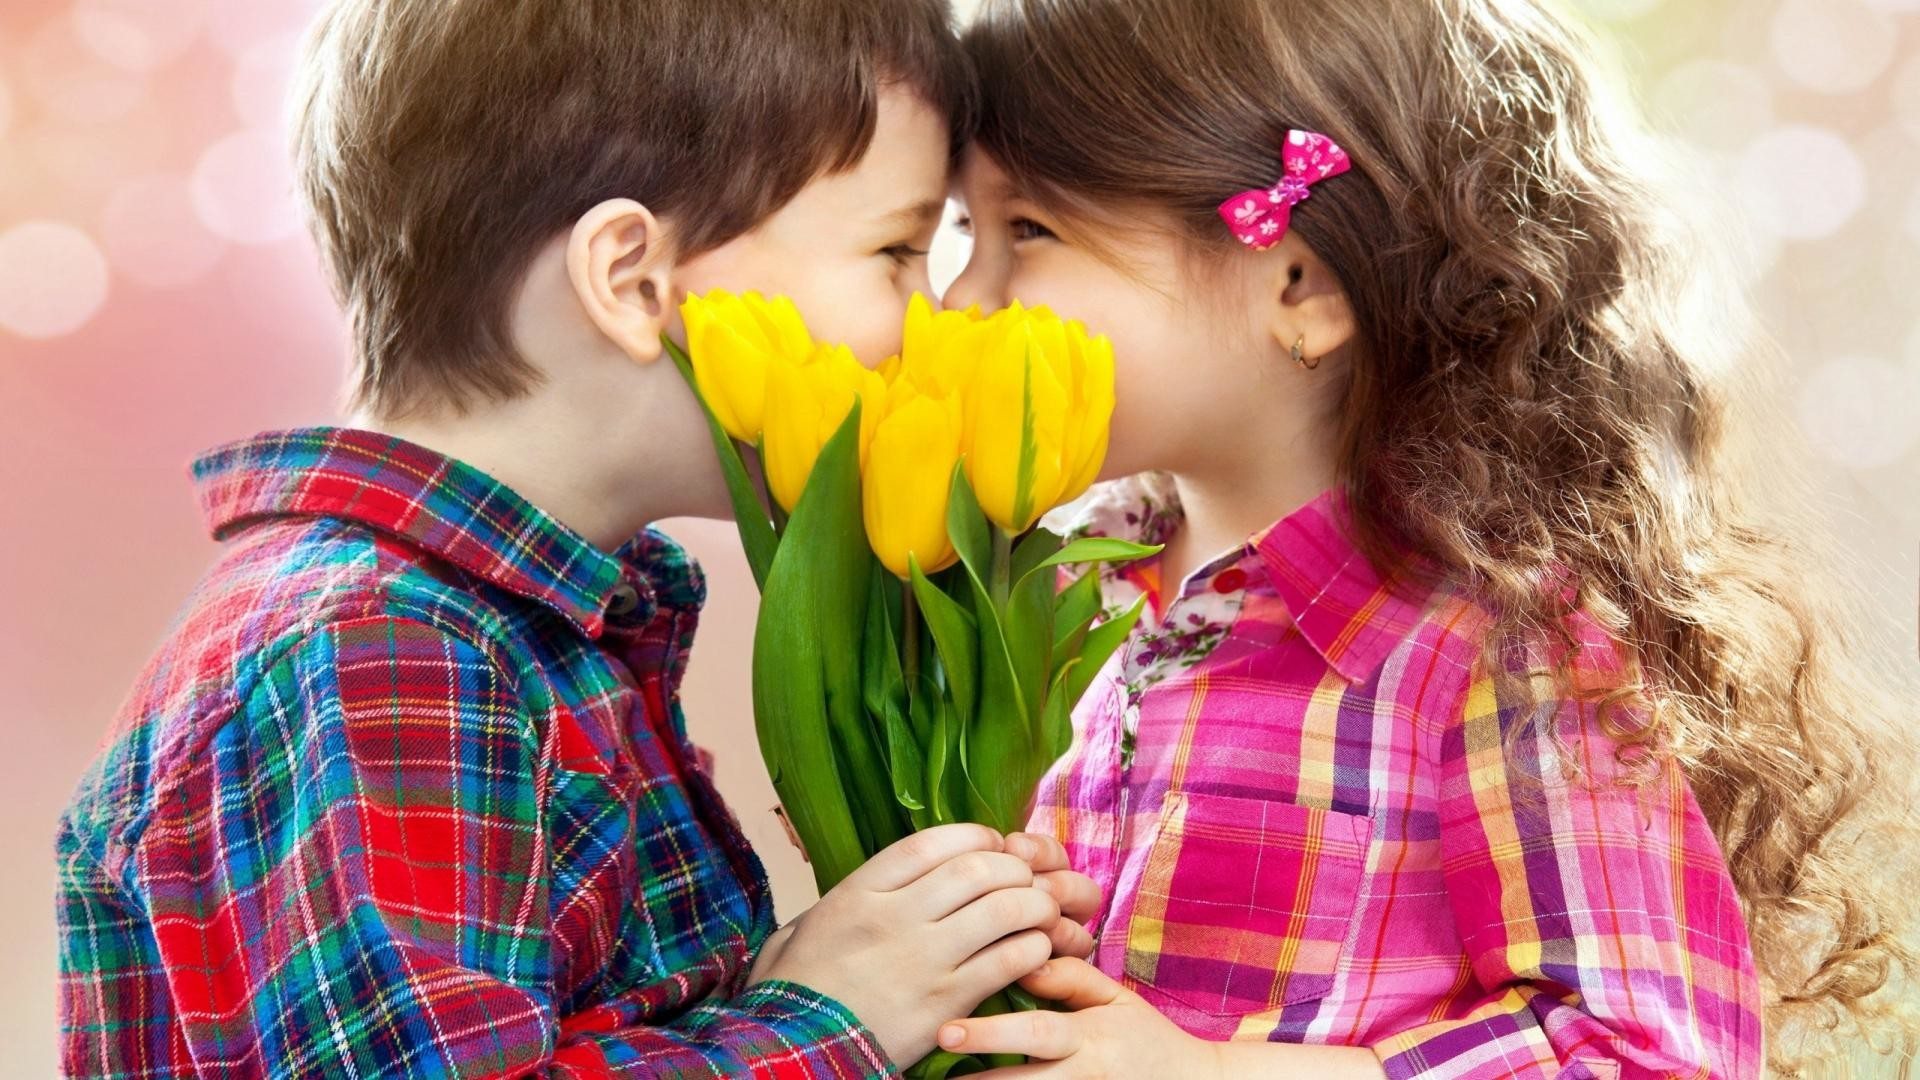 1920x1080 Cute Kids Girl And Boy Kissing HD Wallpaper - StylishHDWallpapers